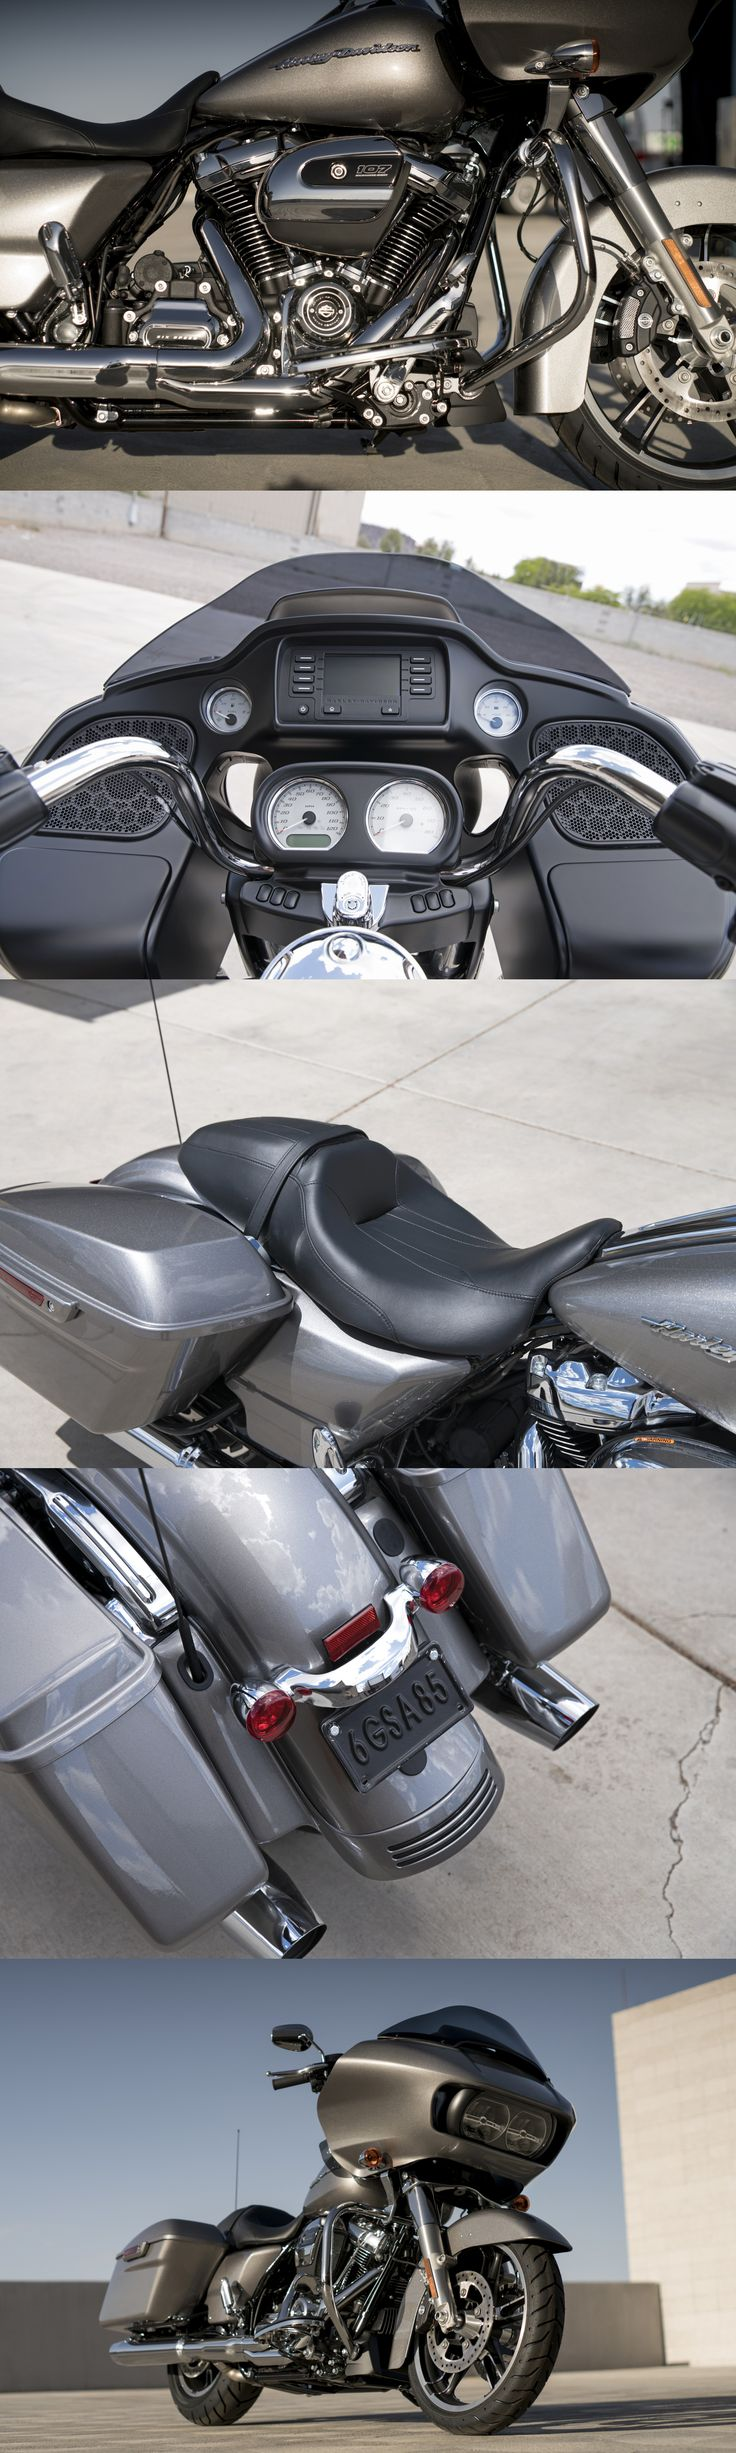 The 2017 Road Glide gets even more aggressive thanks to the all-new Milwaukee-Eight 107 engine, all-new suspension, and Reflex Linked Brembo brakes. It's time to make your own assault on the wind. | 2017 Harley-Davidson Road Glide